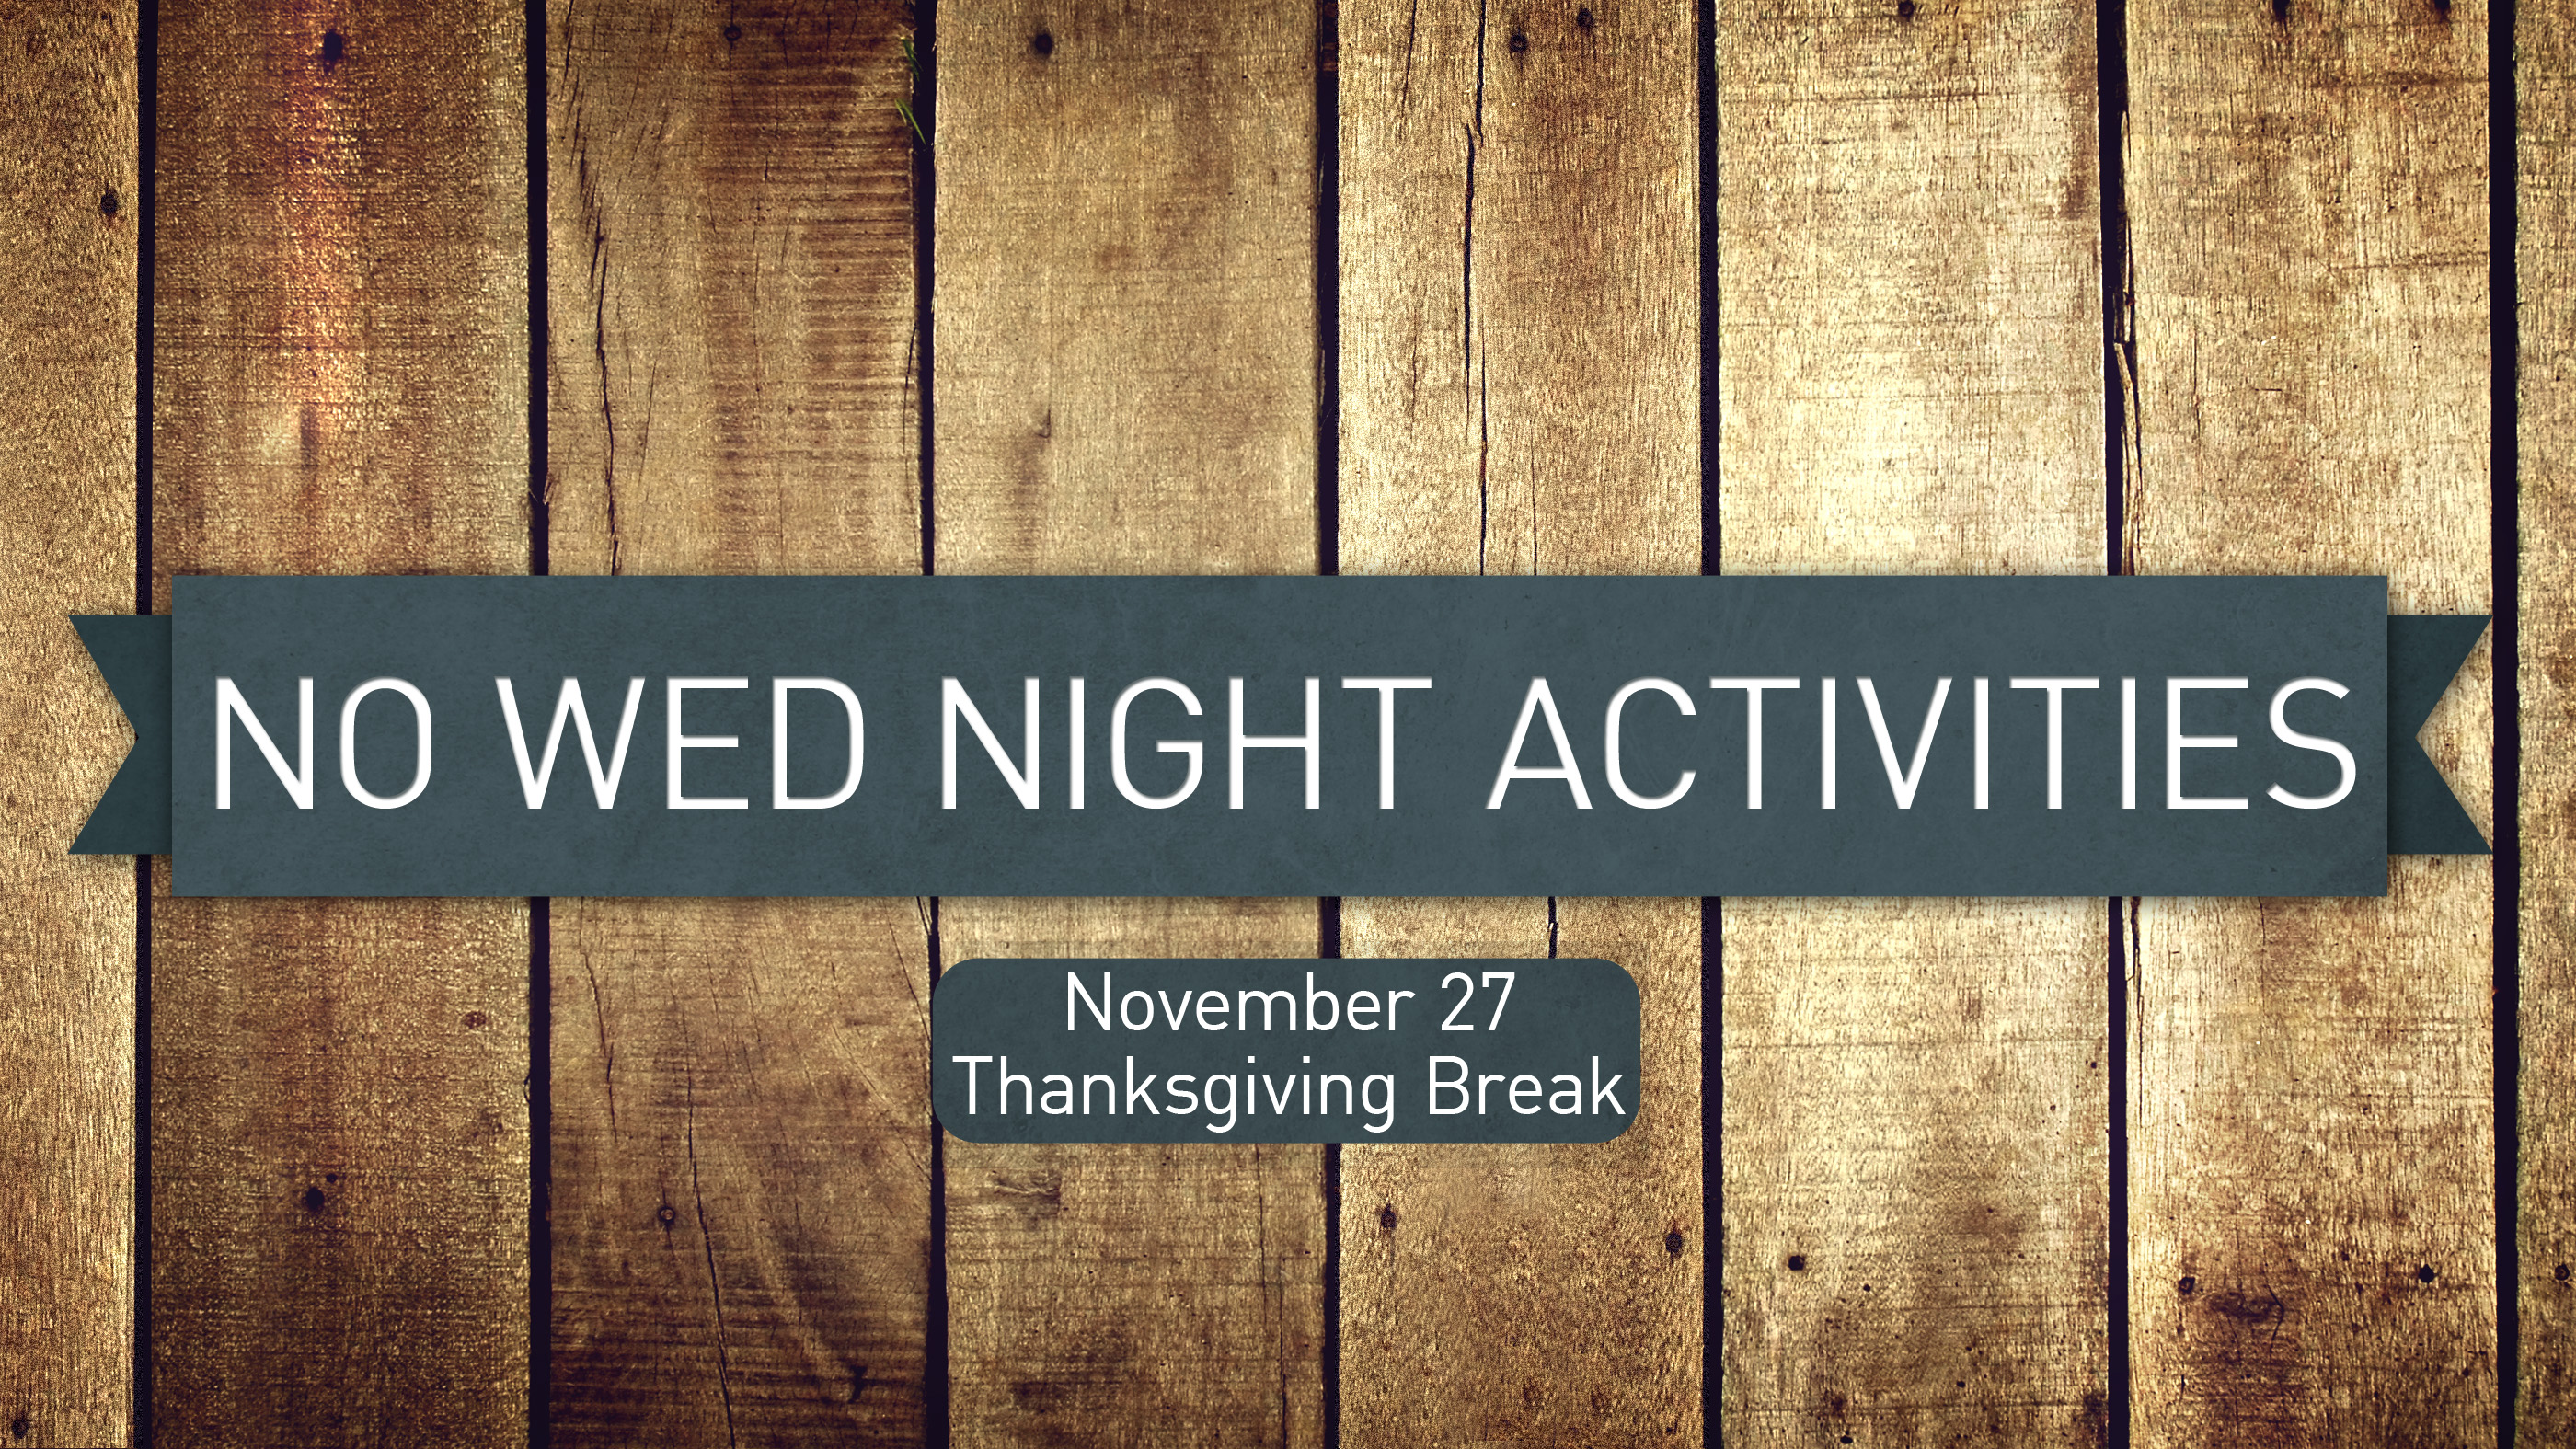 Wed Night Activities Cancelled First Christian Church